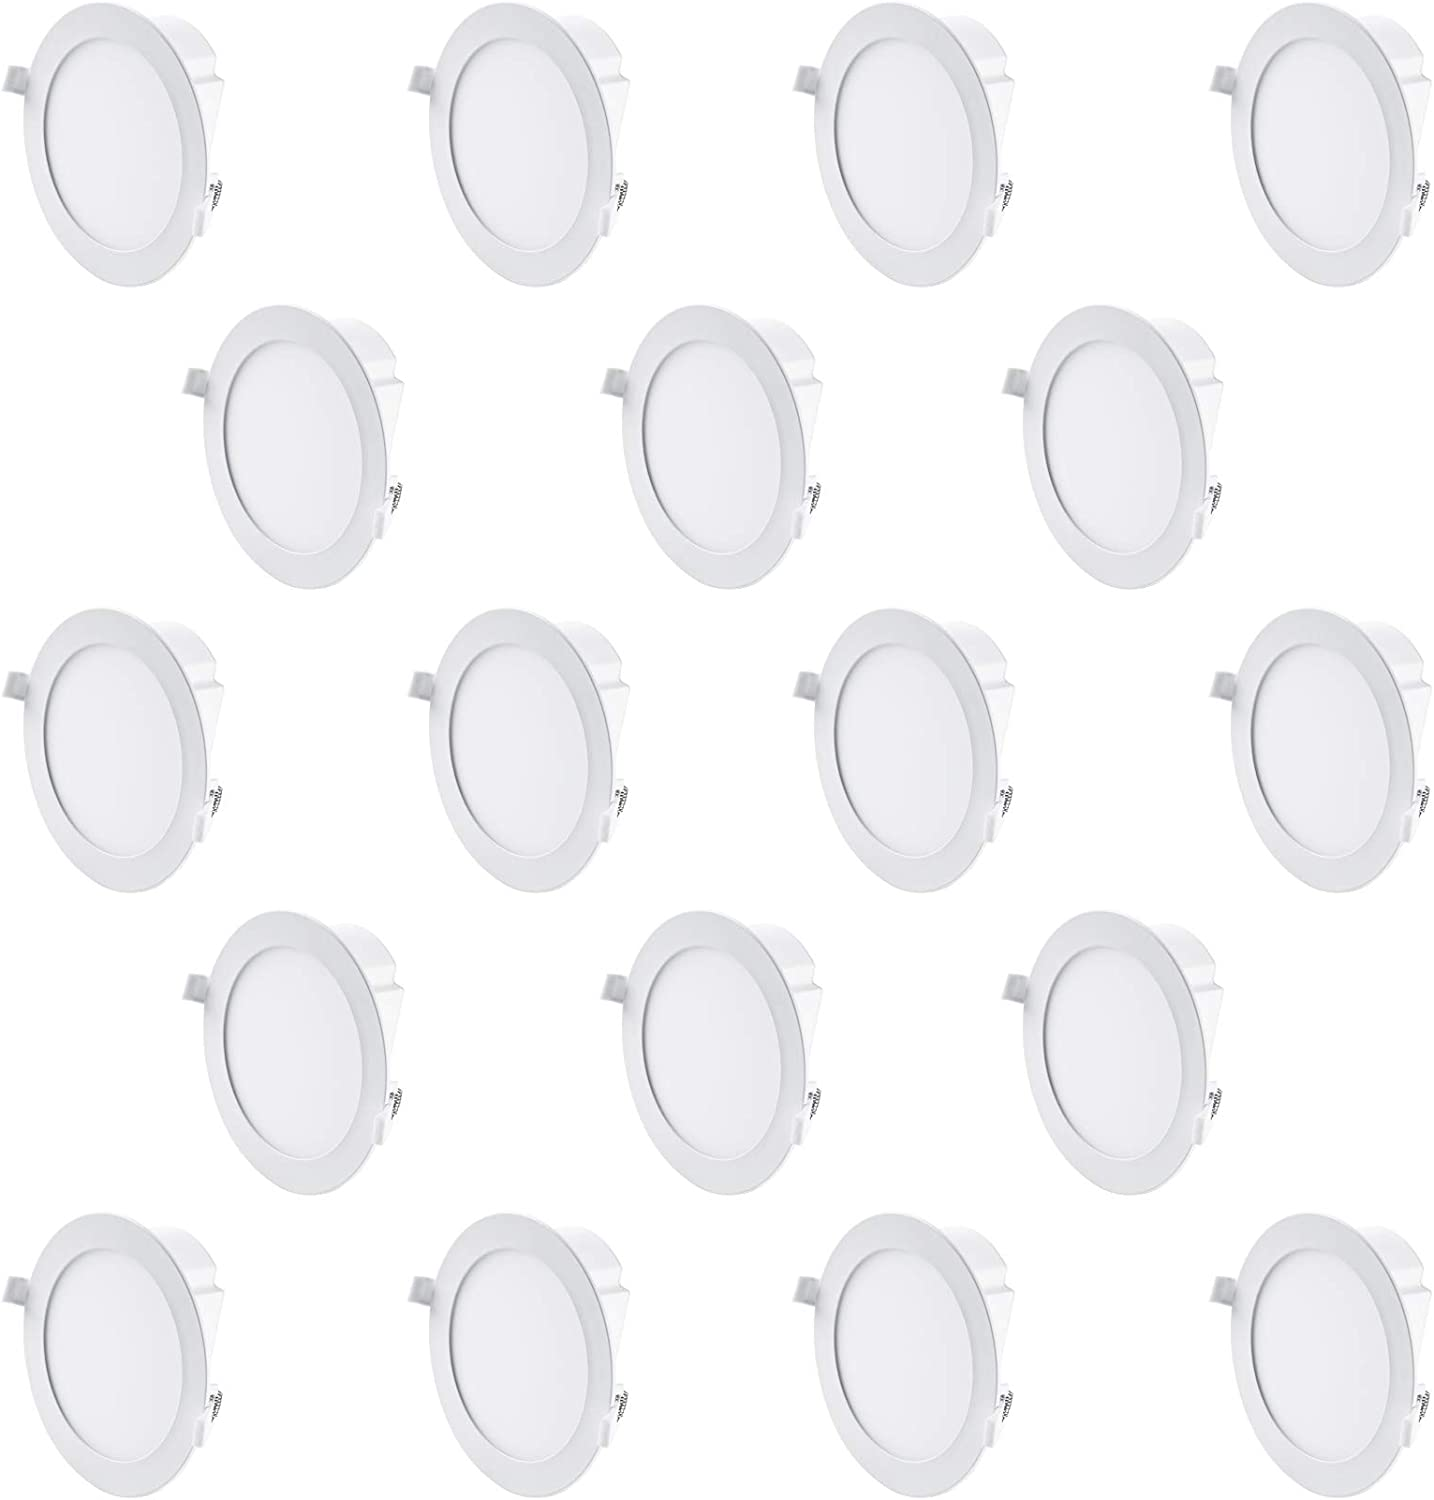 Hyperikon 6 Inch LED Recessed Lights with Integrated Junction Box, 11.6W=65W, Dimmable Downlight, UL, Energy Star, Soft White, 18 Pack